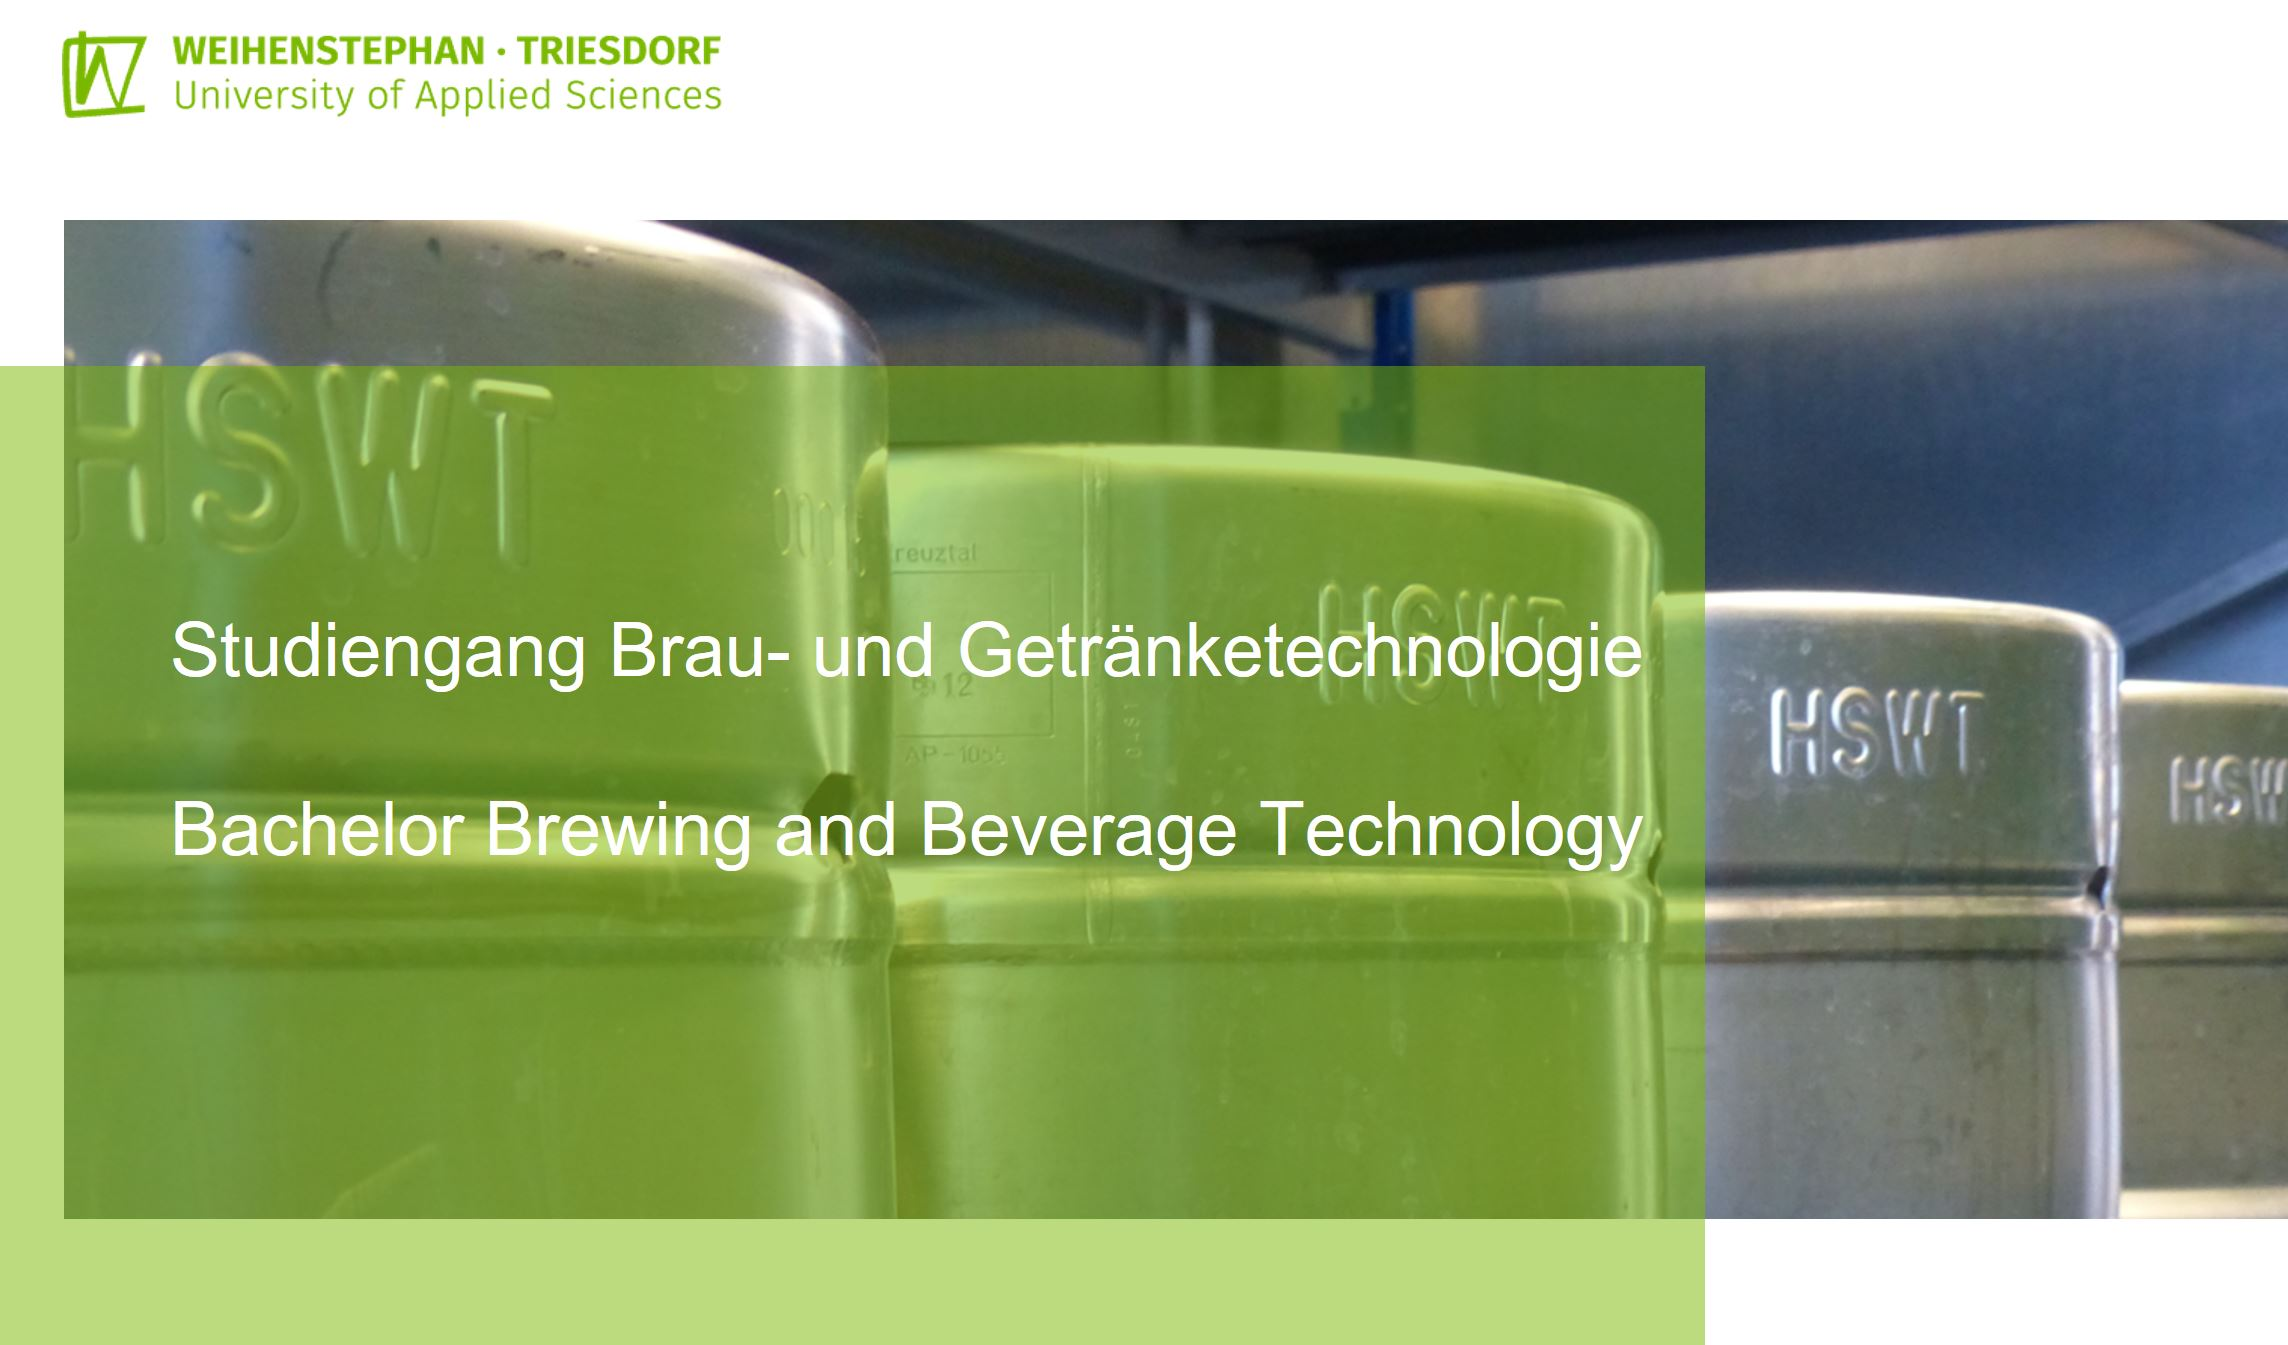 Product picture of Hochschule Weihenstephan-Triesdorf - Brewing and Beverage Technology